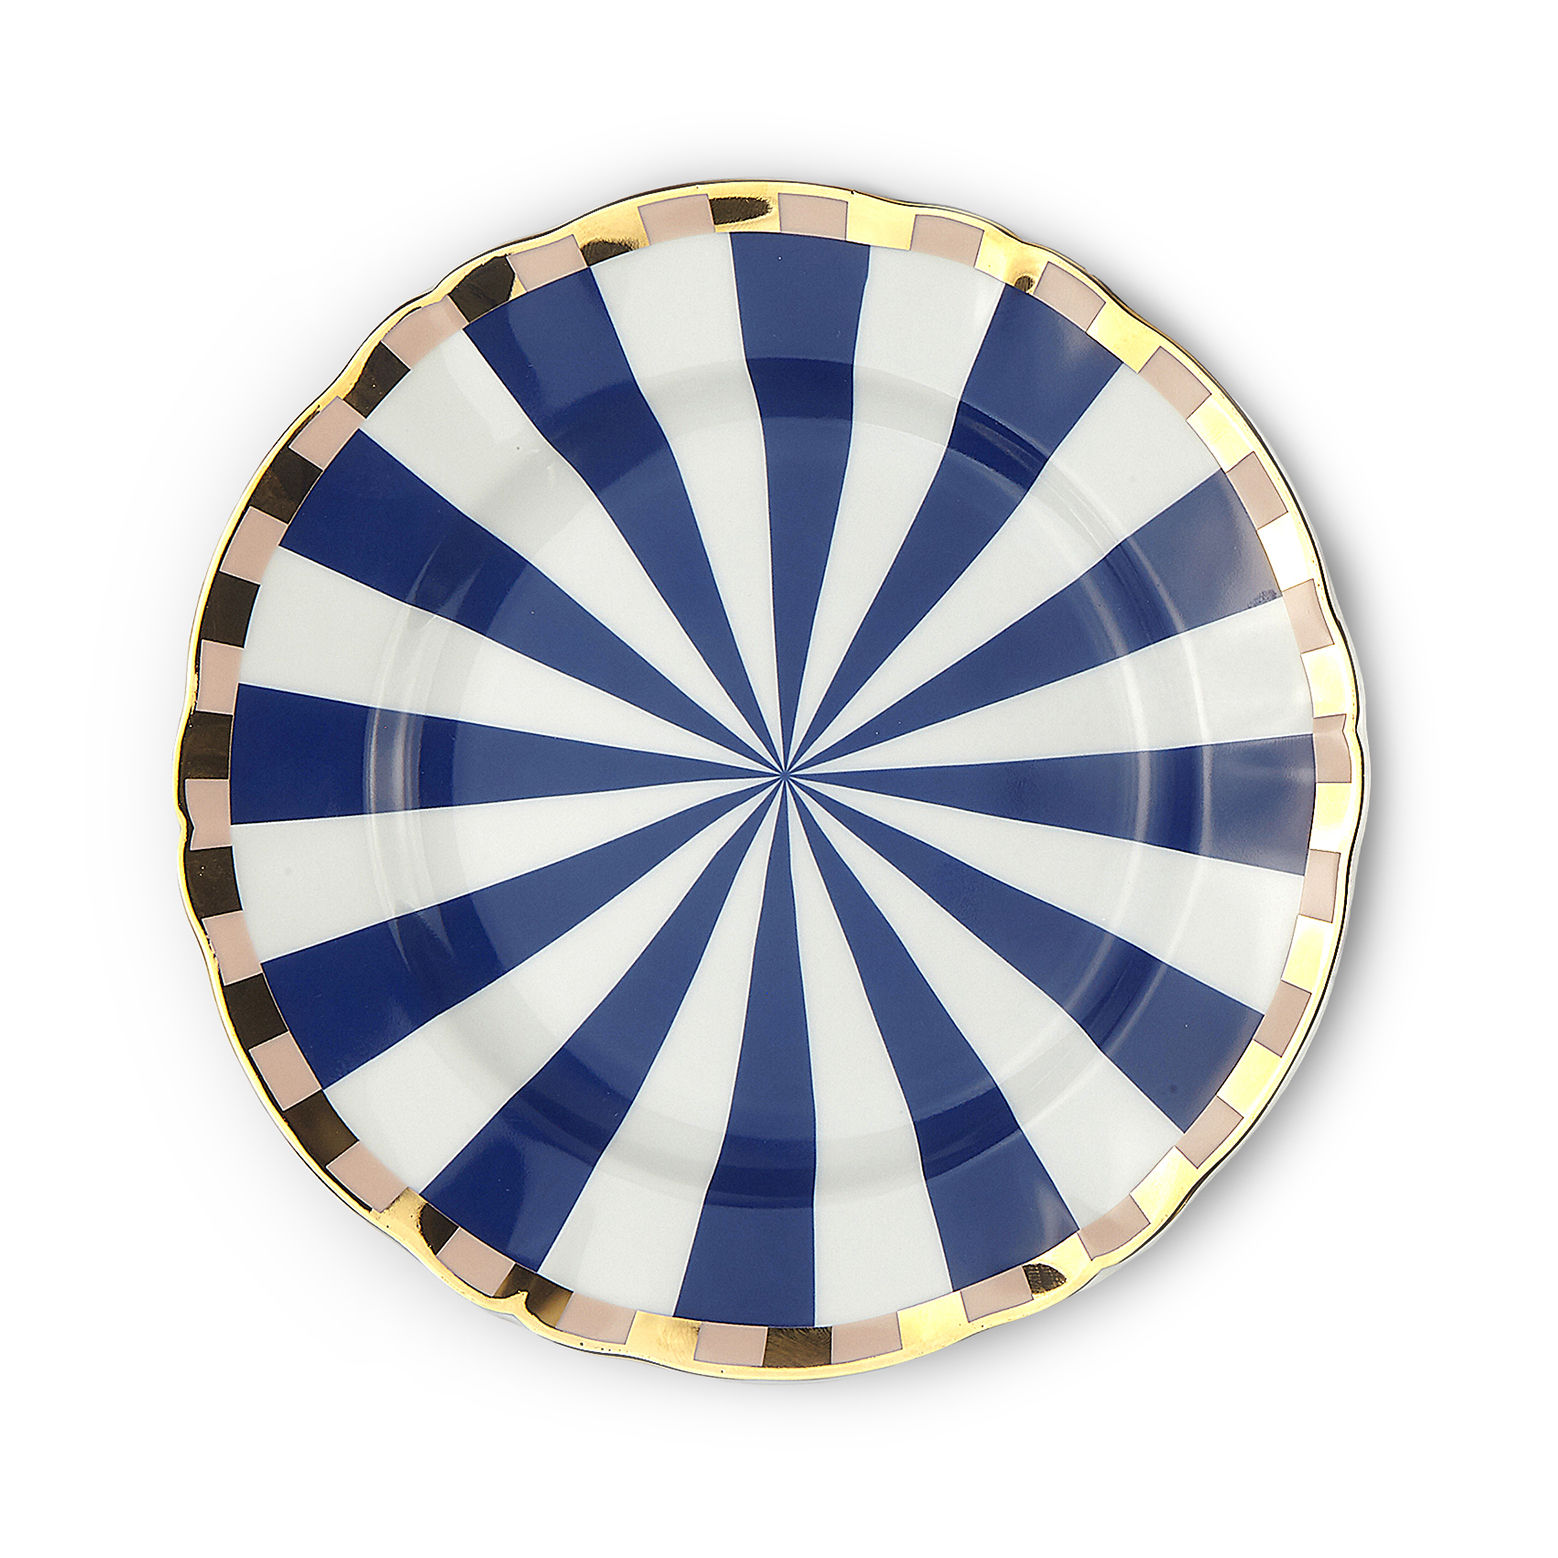 Tableware - Plates - Fortuna Dessert plate - / Ø 20.5 cm by Bitossi Home - Geometry - China